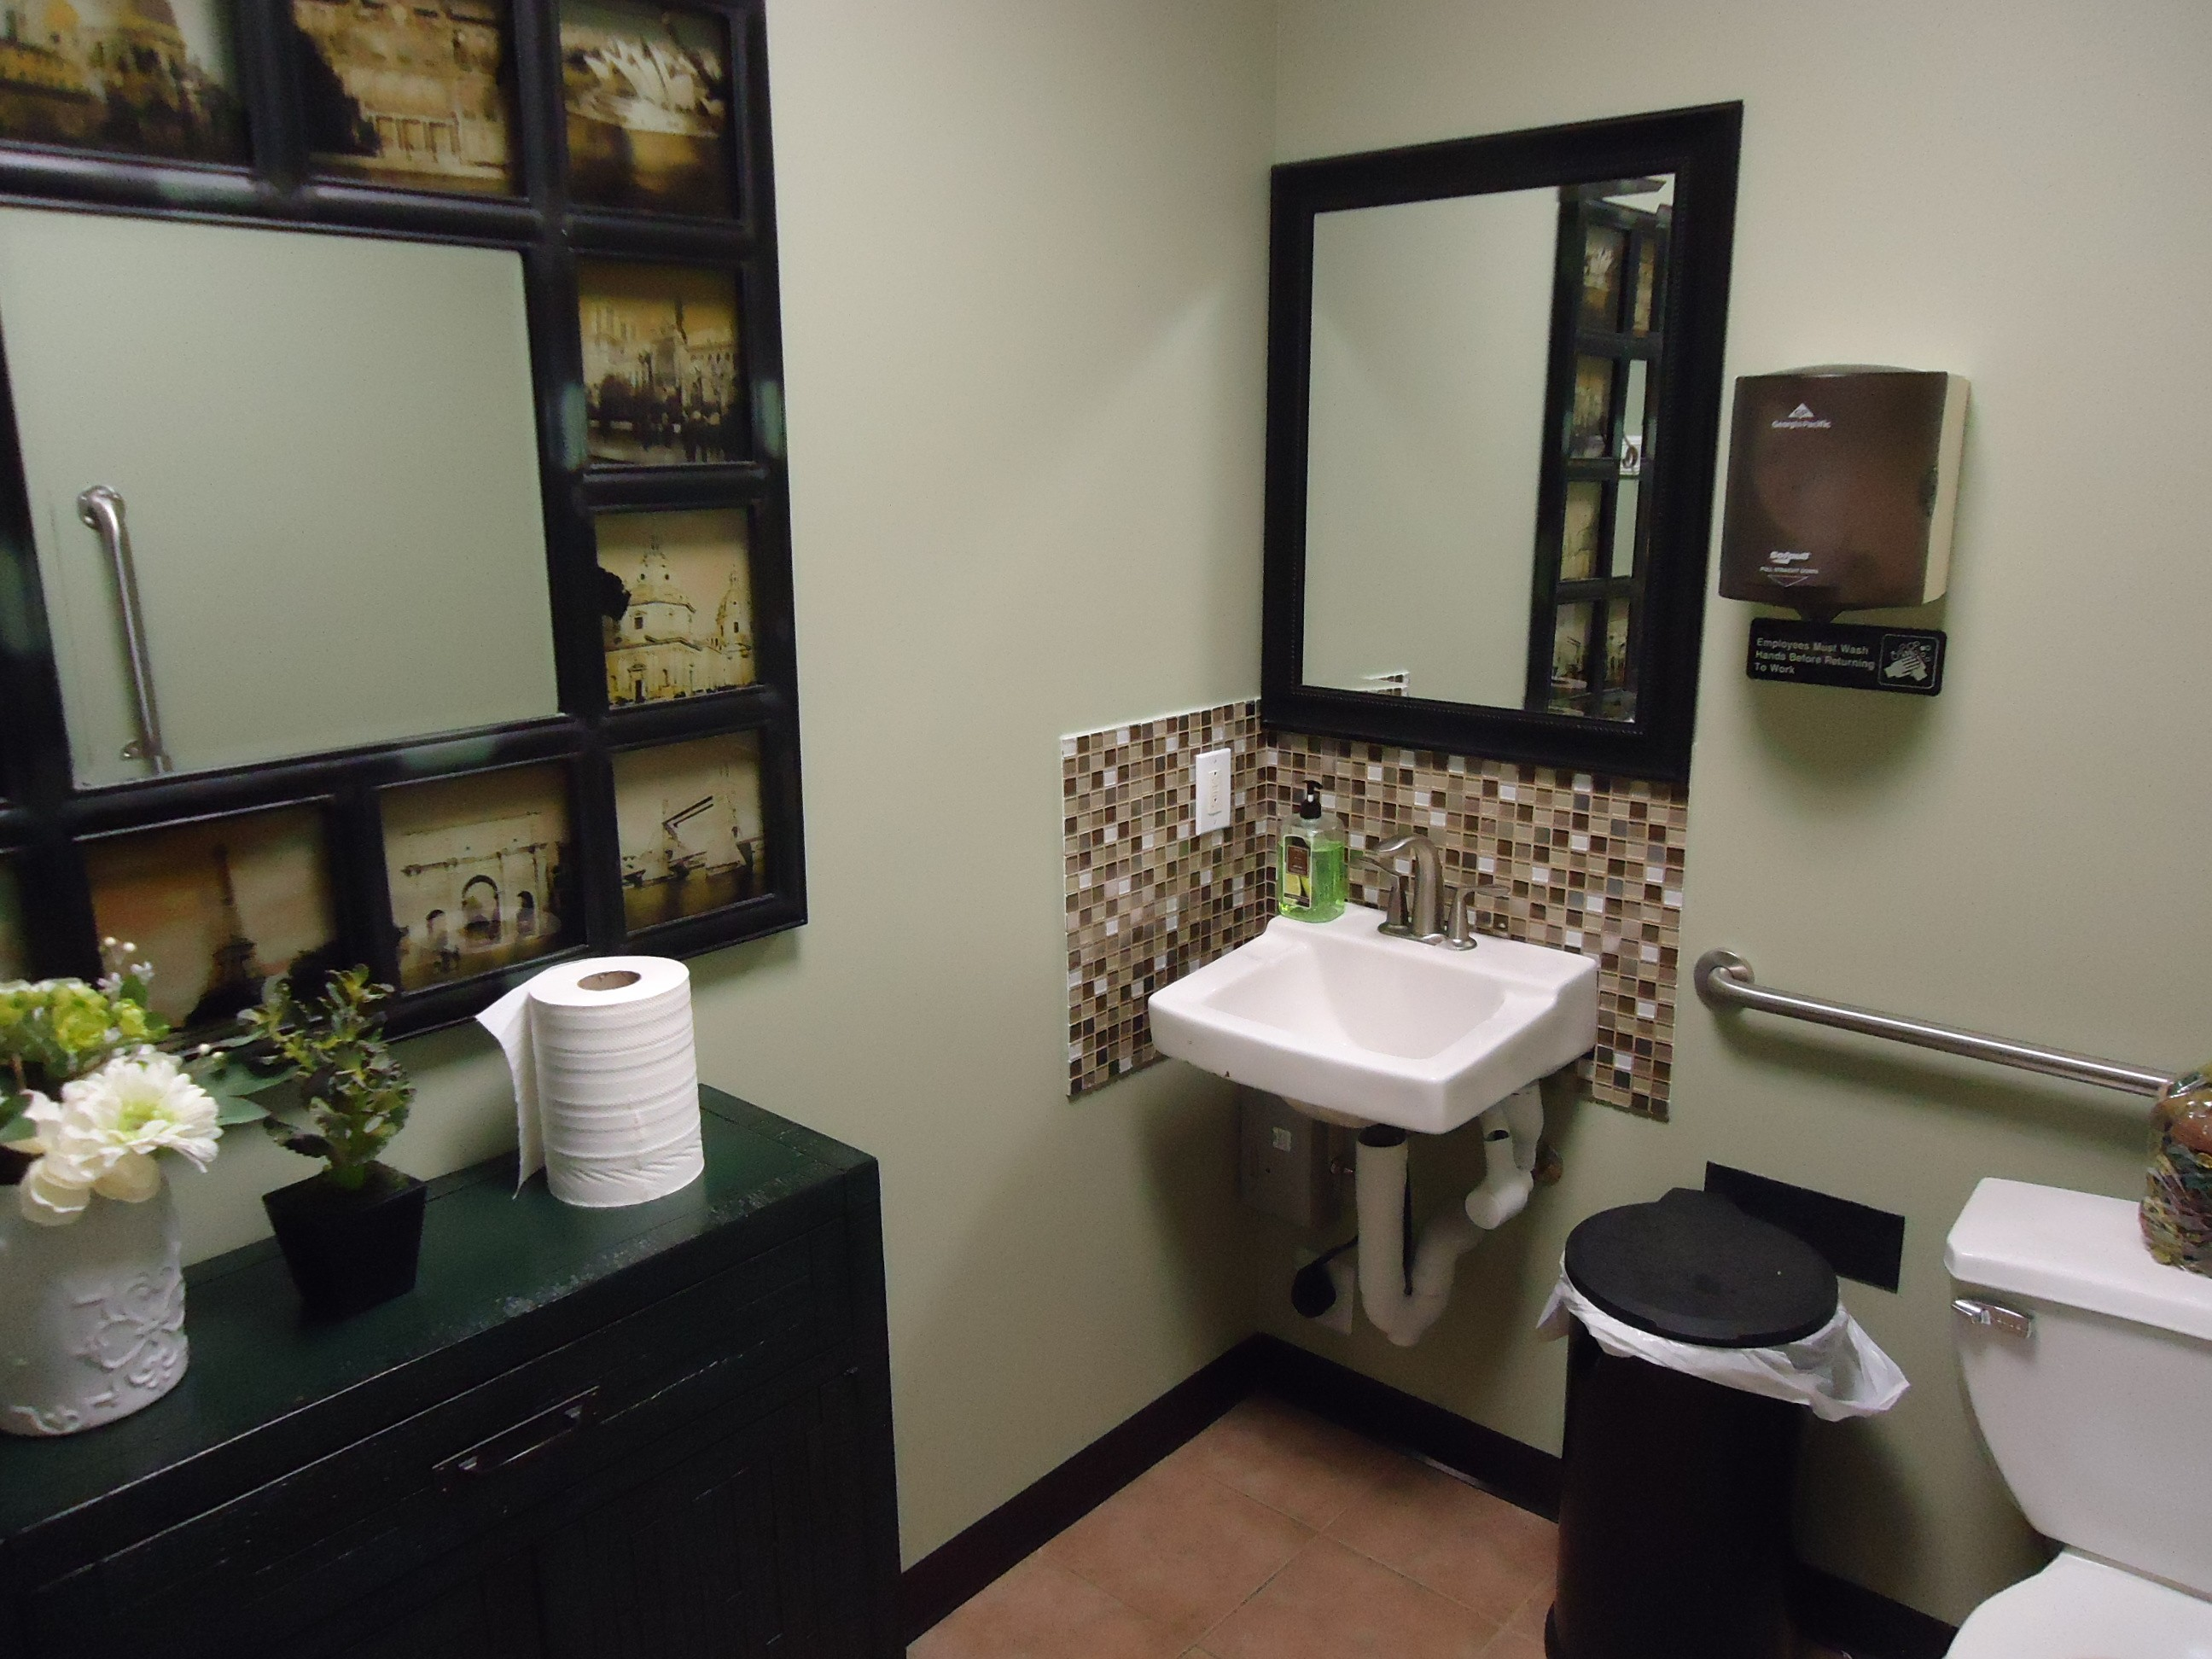 Bathroom Remodel Edison Nj file:edison nj the coffee house beautiful bathroom decor